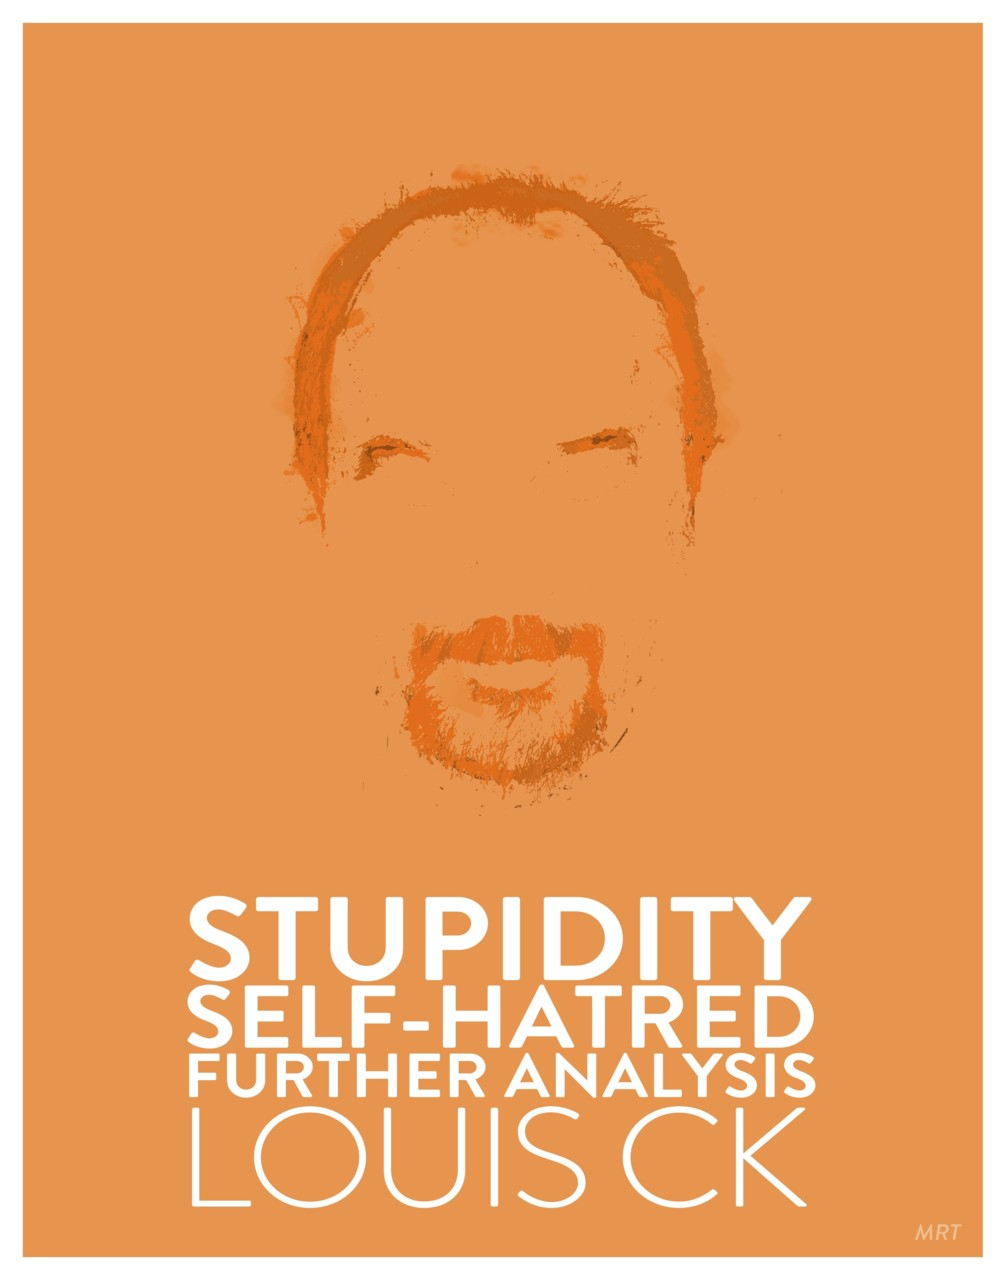 Poster inspired by Louis CK's Hilarious. I don't know this guy, but you can vote for his entry here on Facebook.